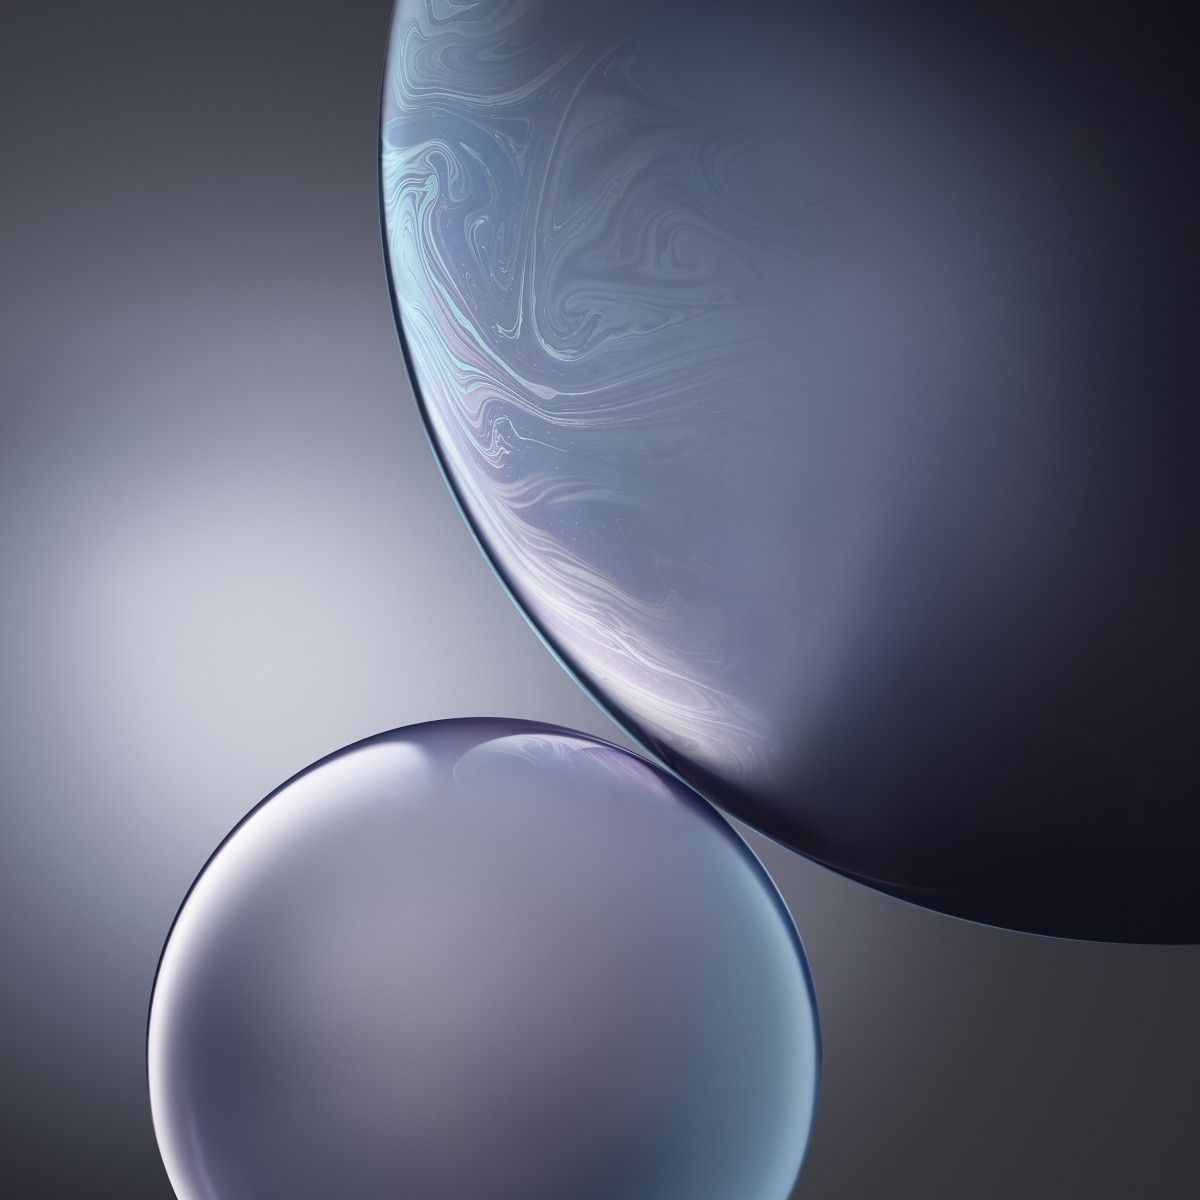 Download The All New iPhone XR 'Bubble' Wallpapers Here